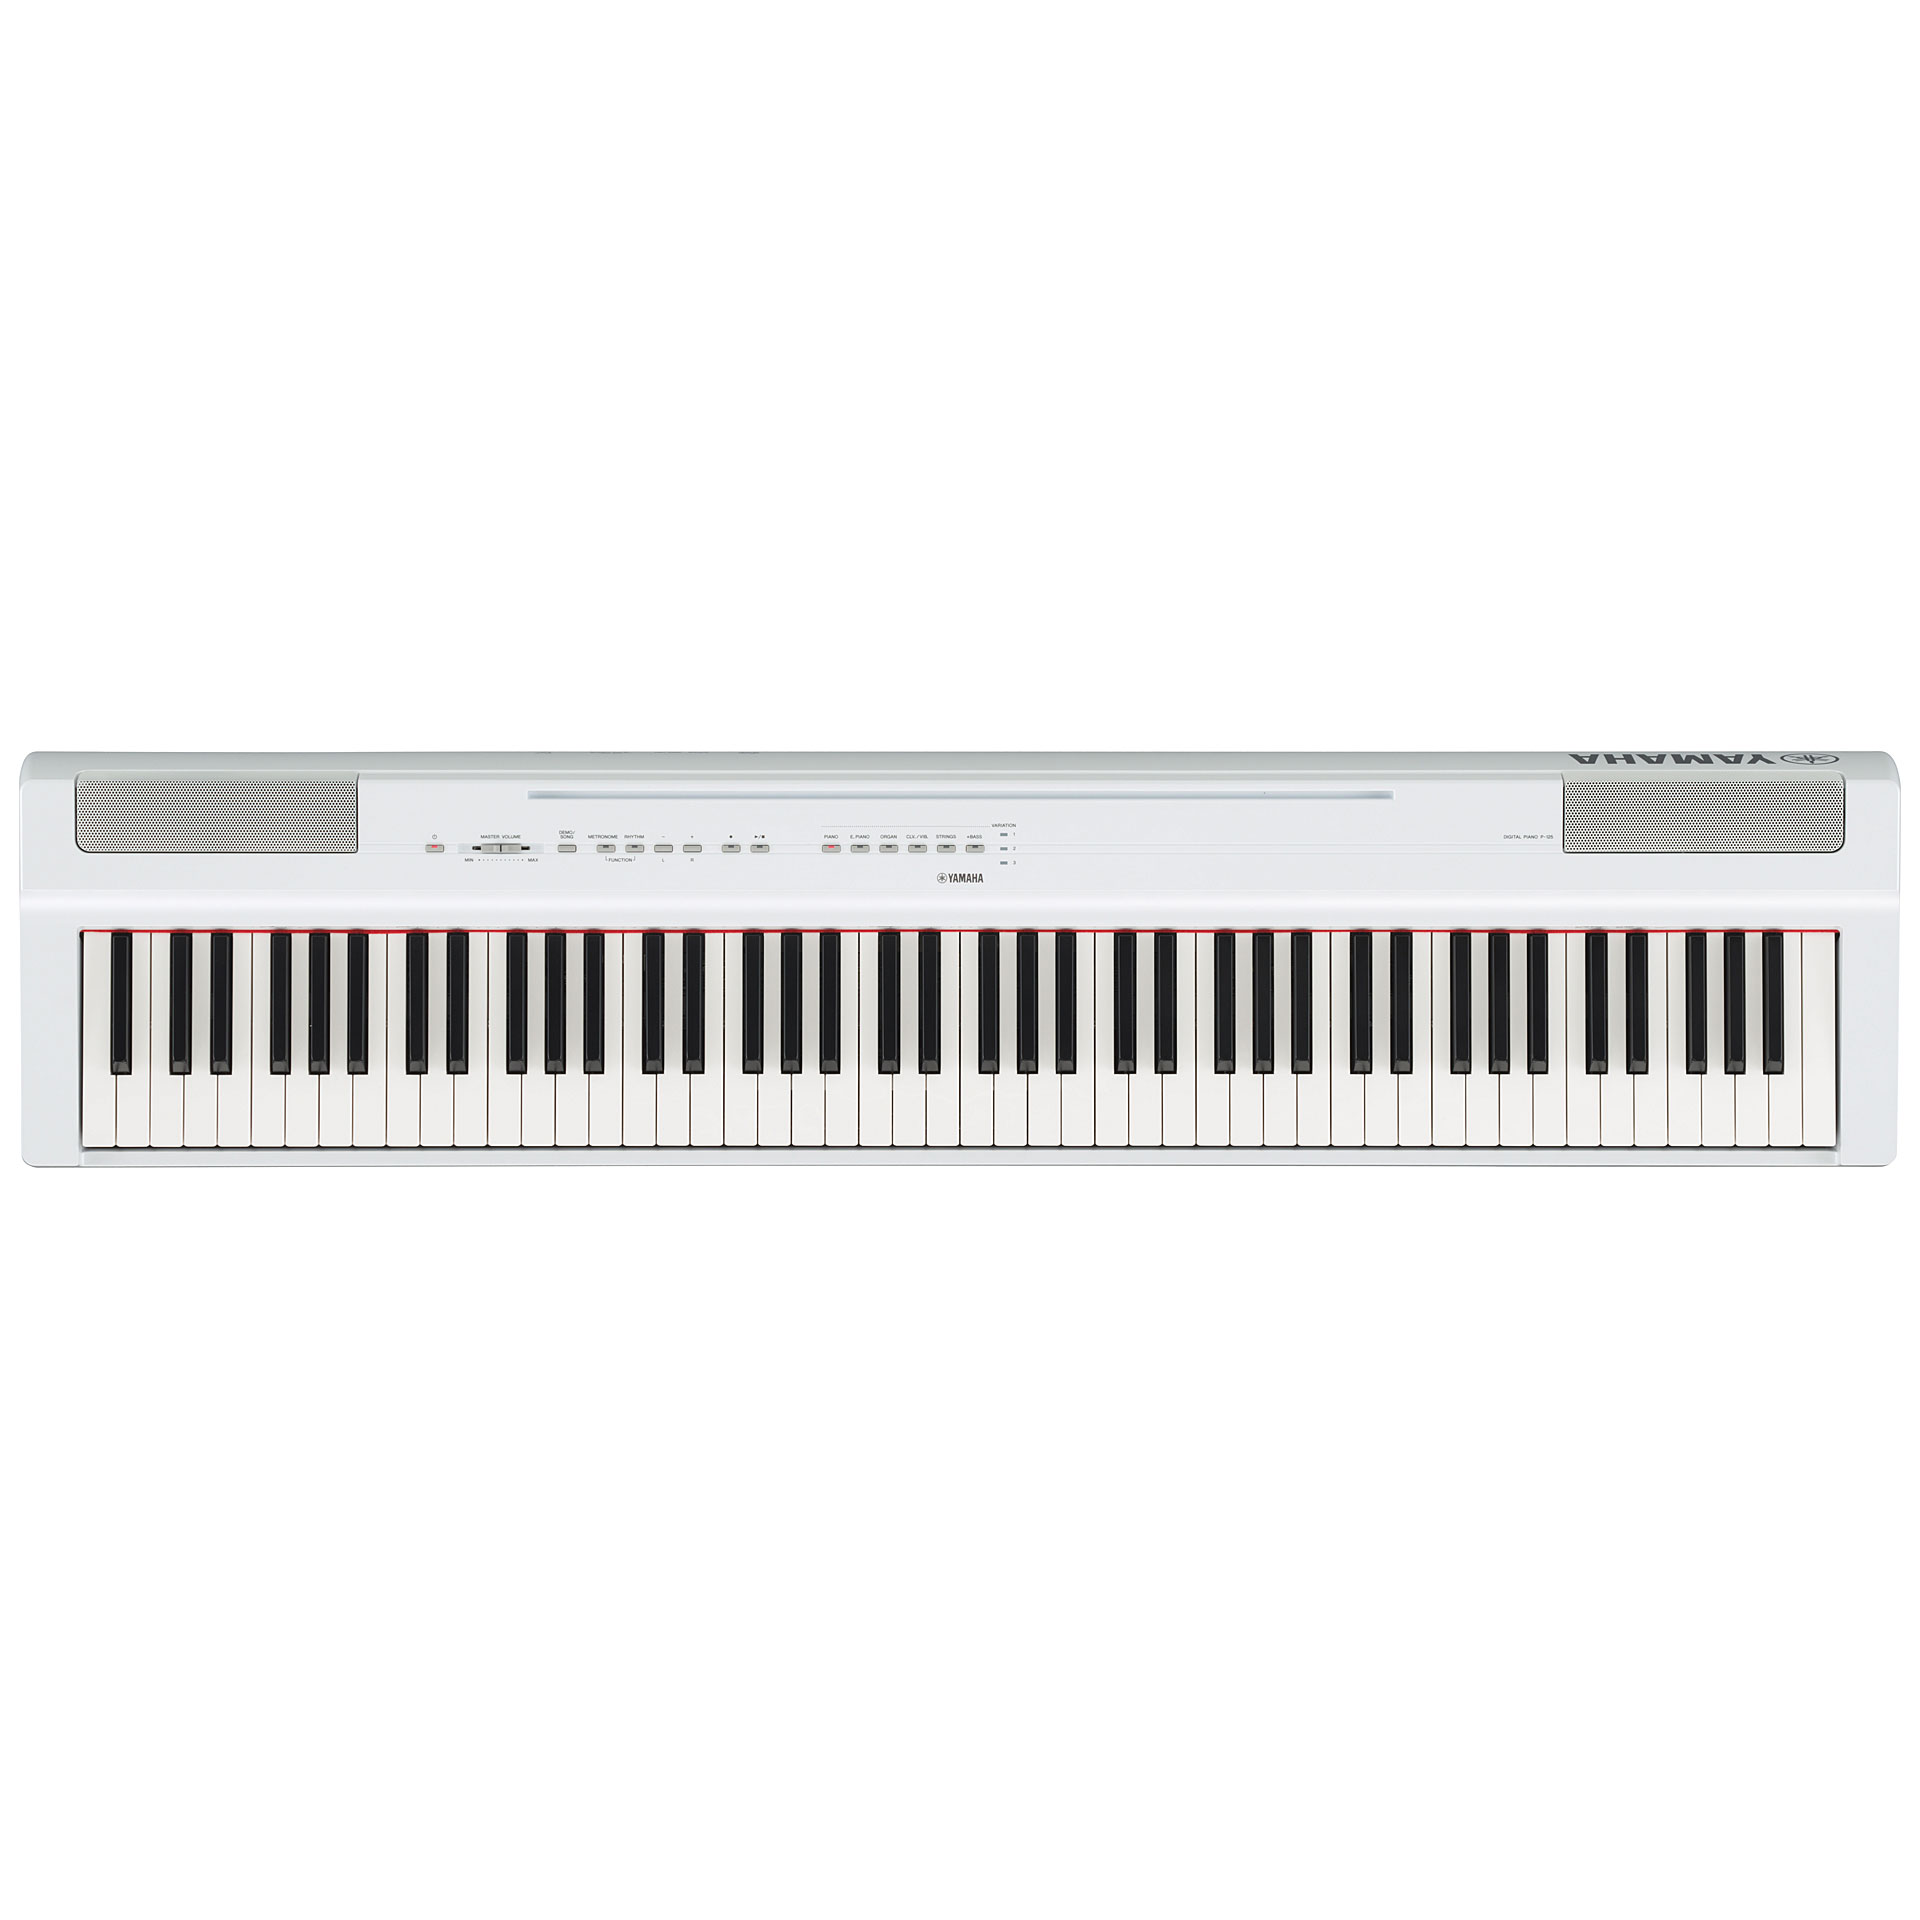 Yamaha p 125wh stagepiano for Certified yamaha outboard service near me